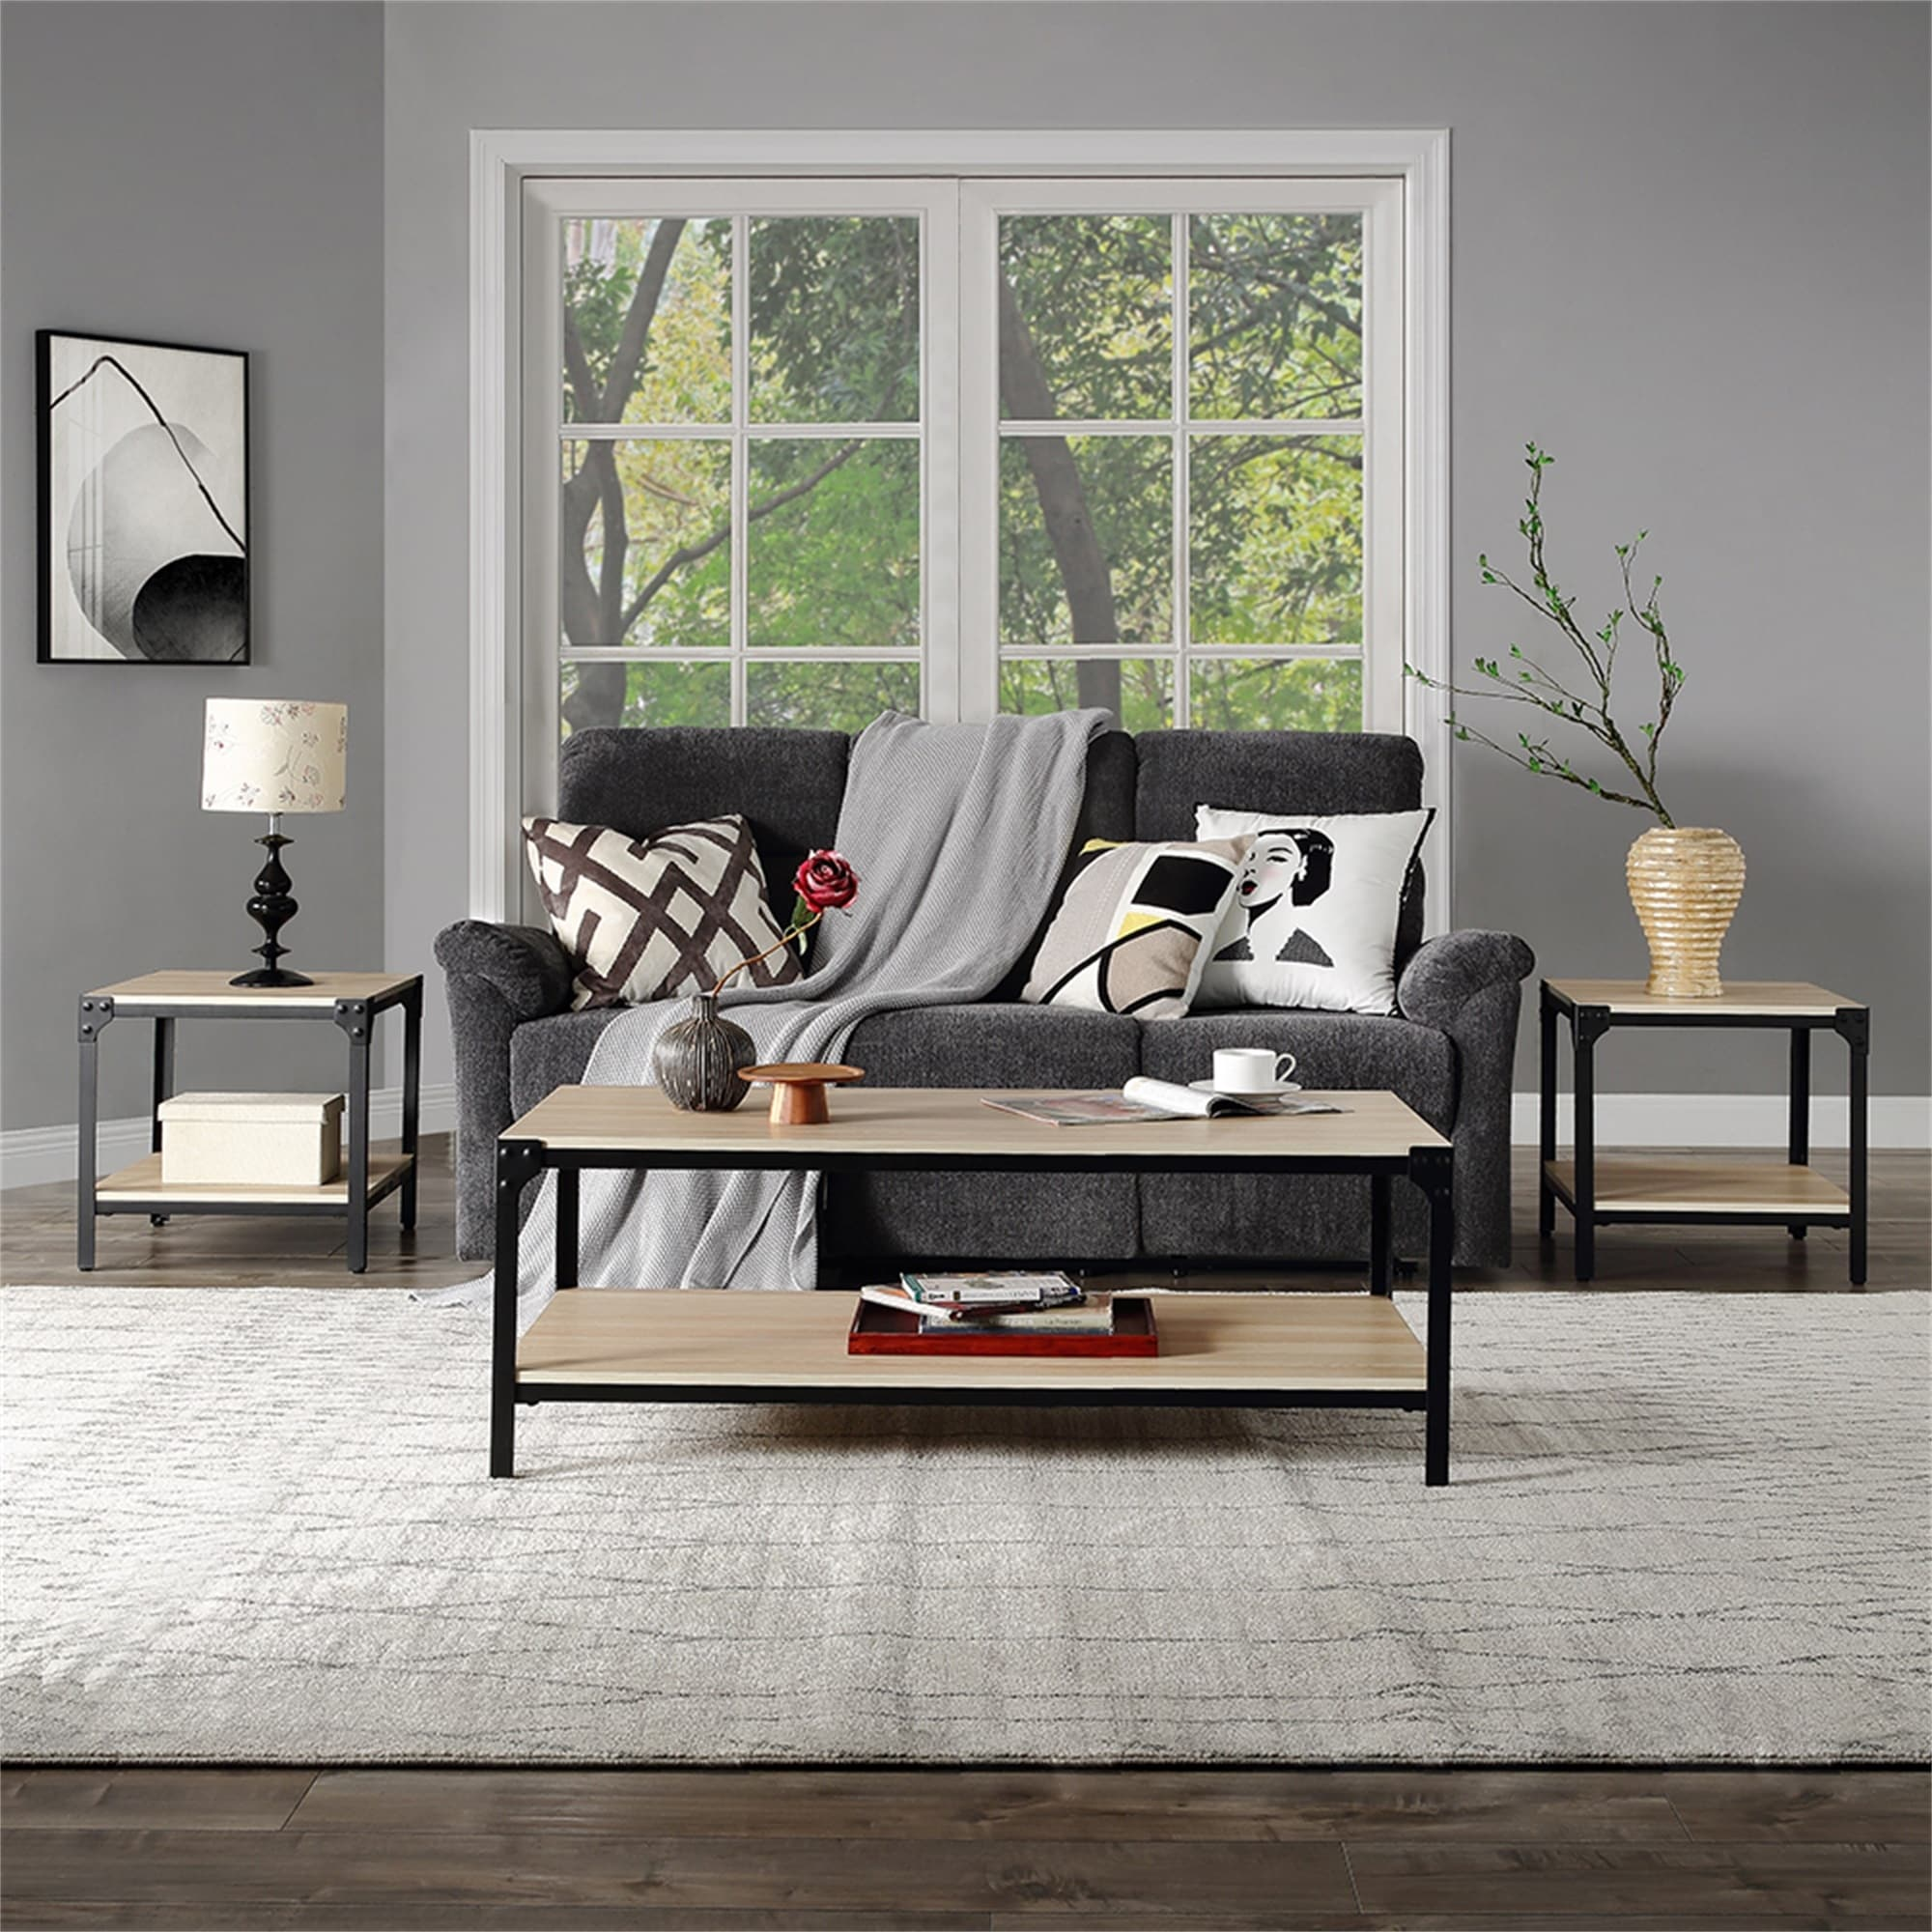 Picture of: 3 Piece Coffee End Table Set Wood Modern Living Room Furniture Decor On Sale Overstock 31806355